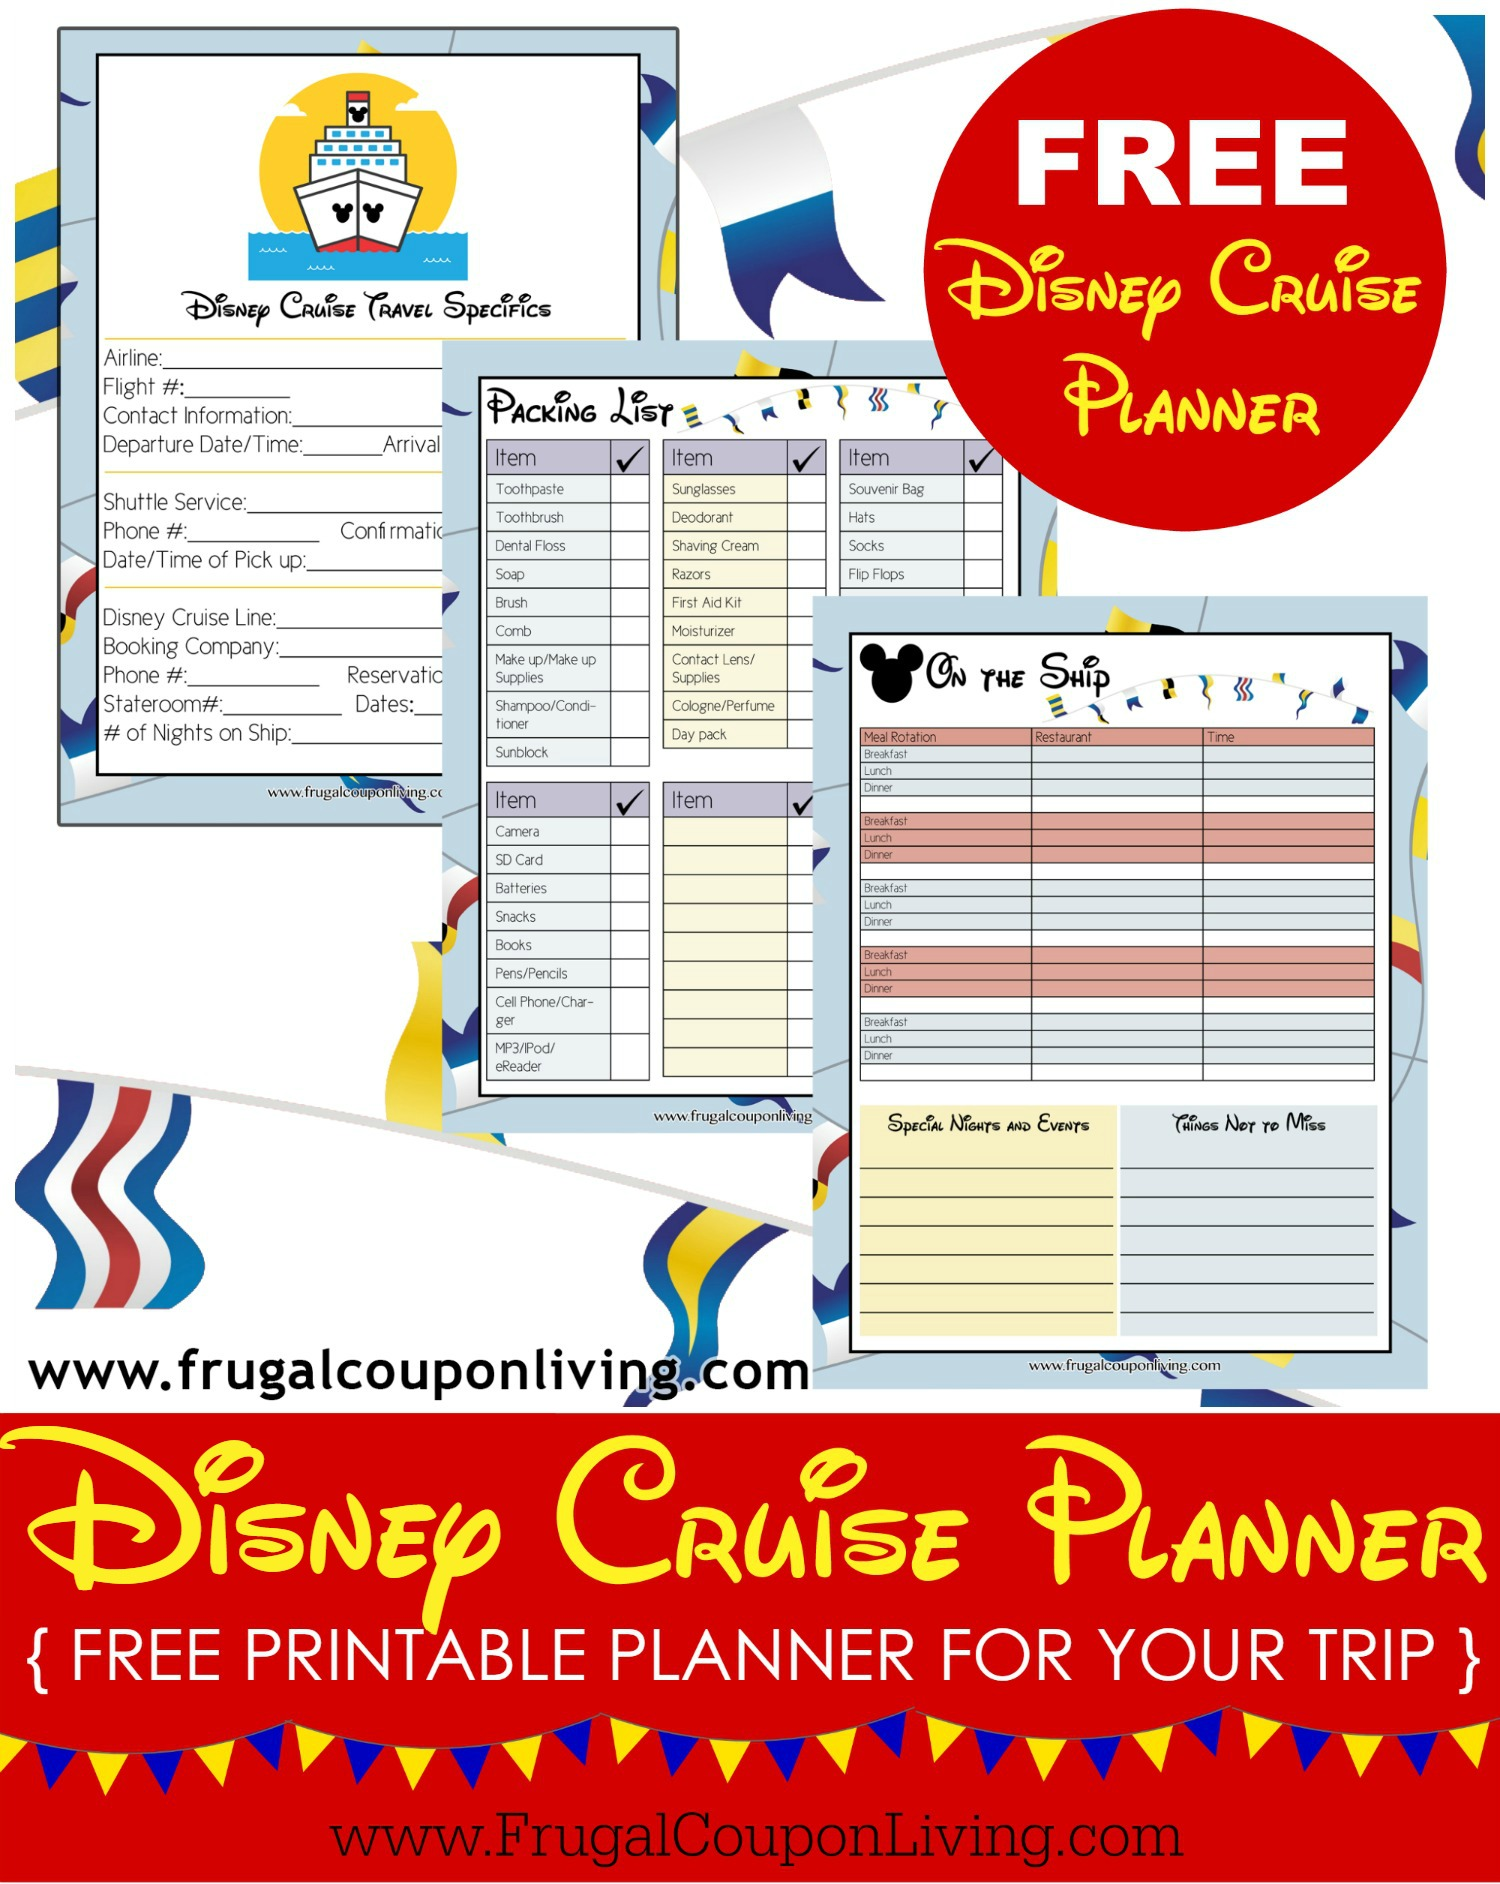 disney-cruise-planner-free-printable-header-frugal-coupon-living